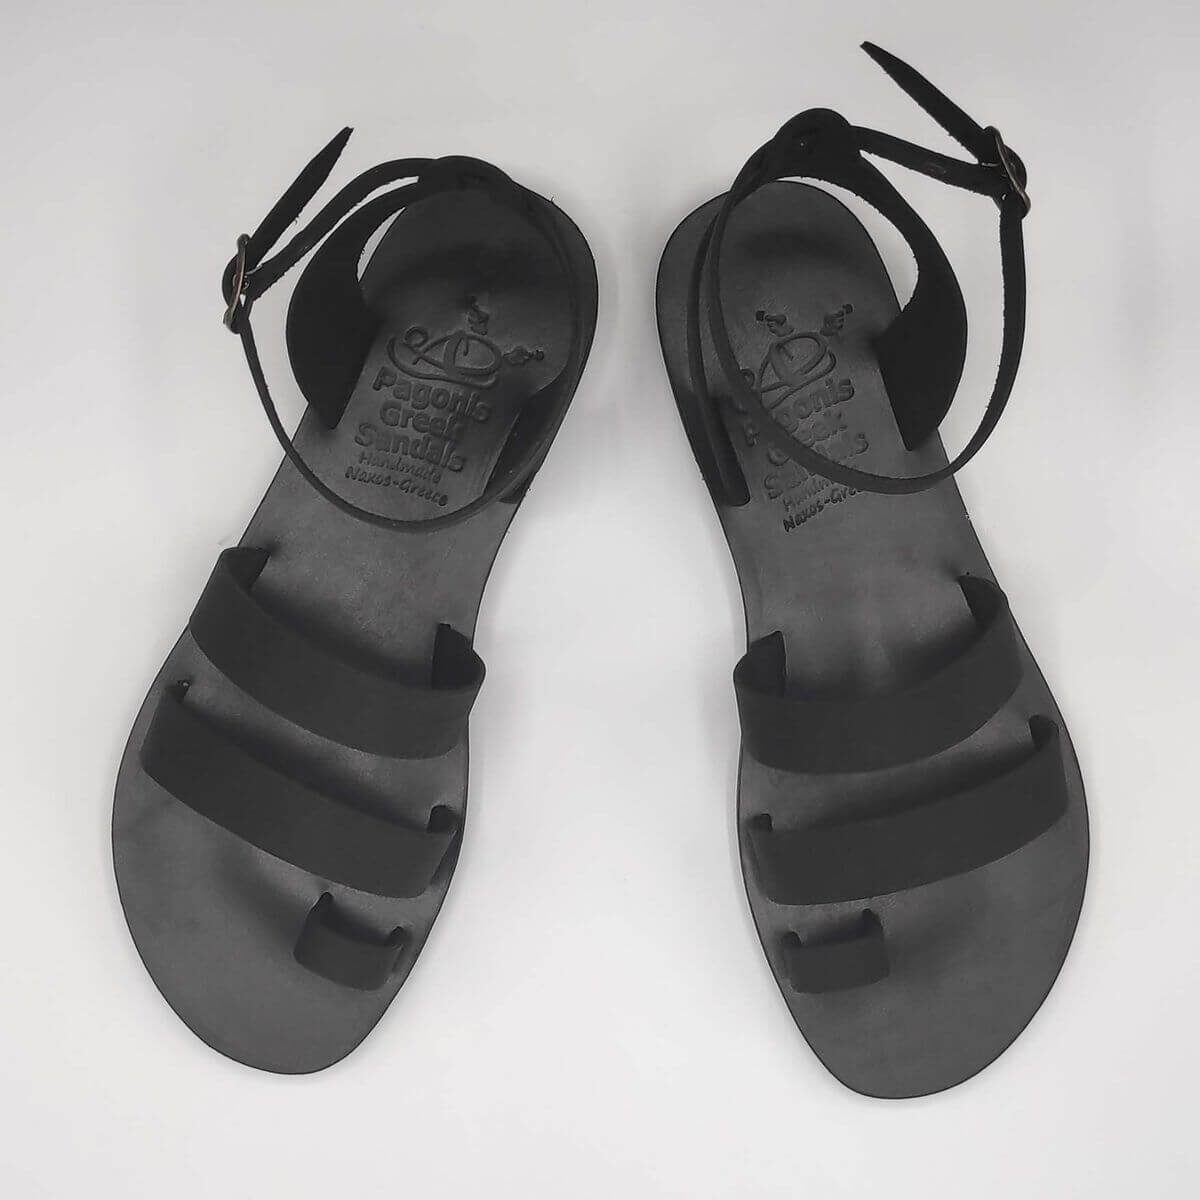 Black Nubuck leather dressy sandals with two straps, toe ring and high ankle strap, top view